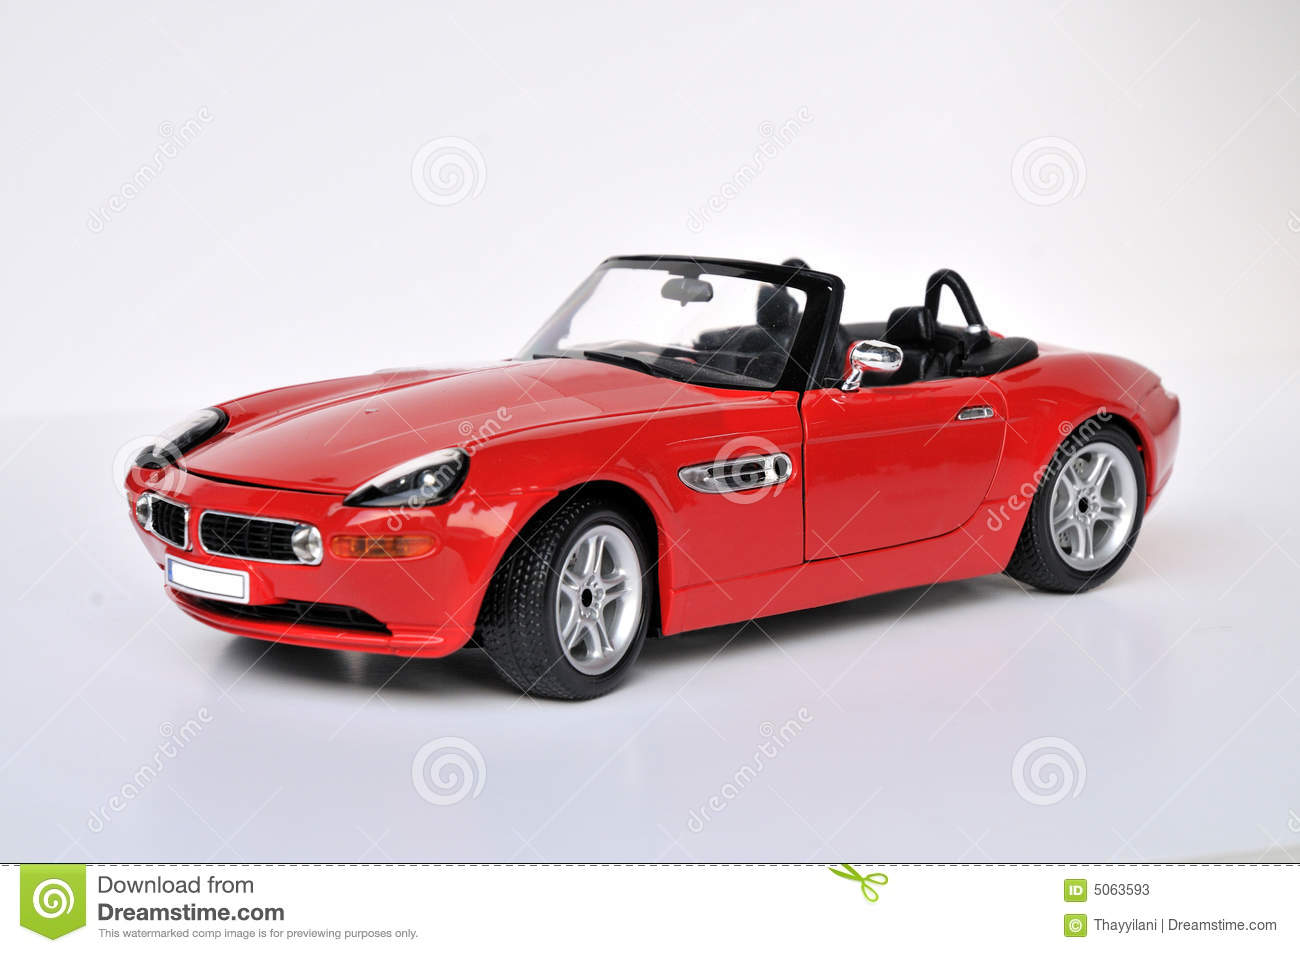 bmw sports car stock photos image 5063593. Black Bedroom Furniture Sets. Home Design Ideas